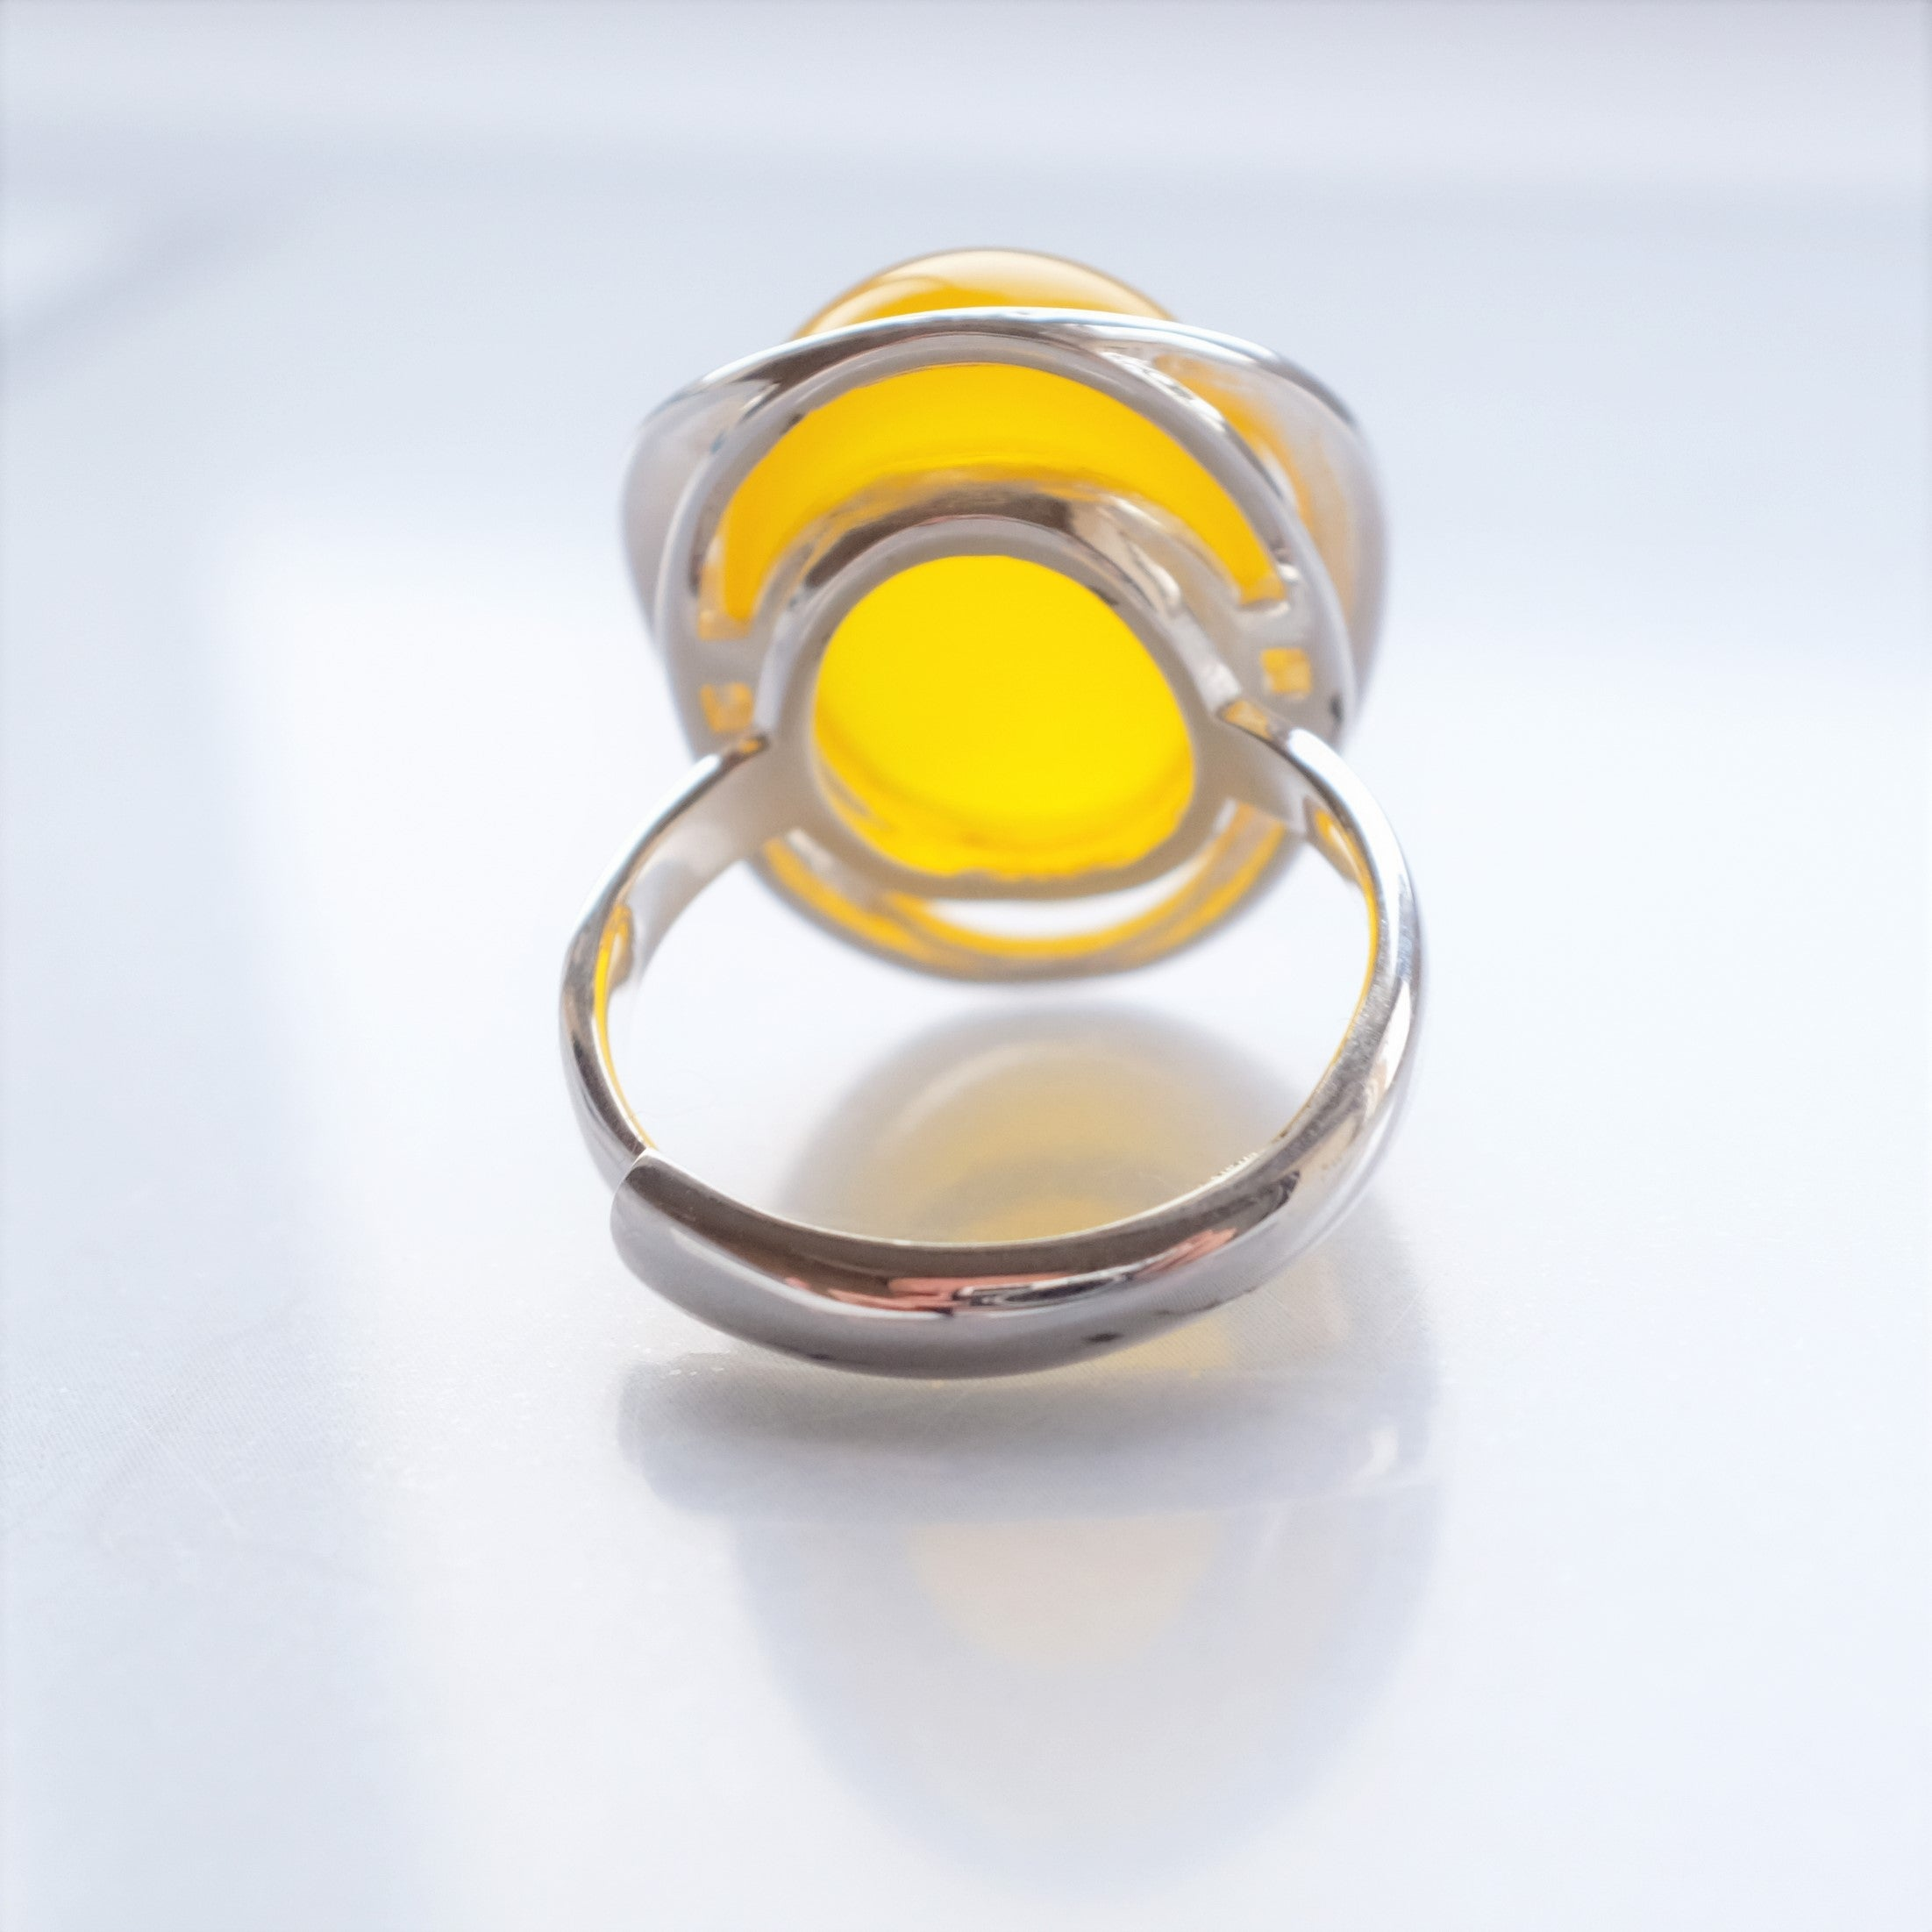 Chick silver ring